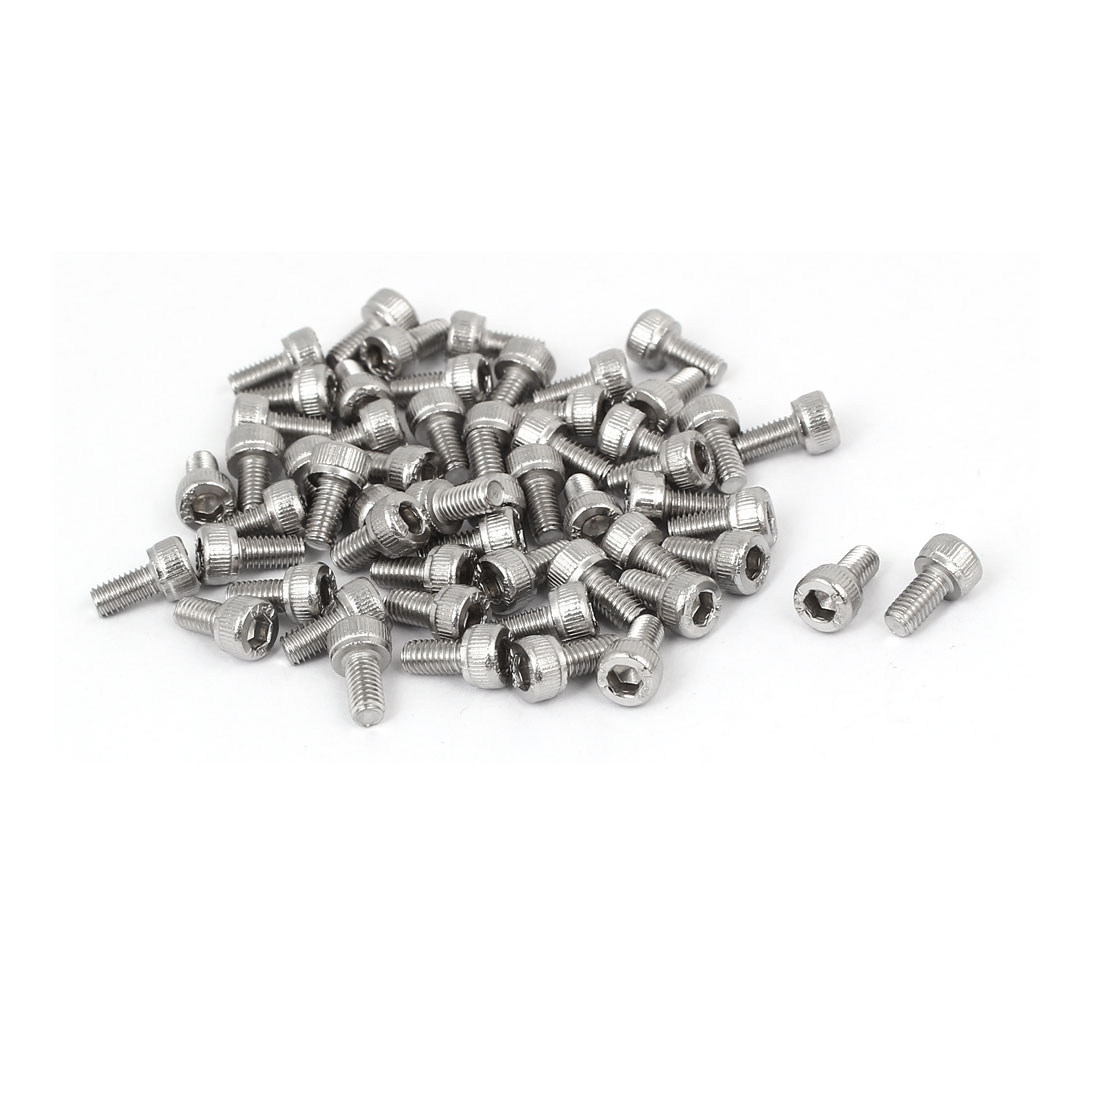 M3x6mm Thread 304 Stainless Steel Hex Socket Head Cap Screw Bolt DIN912 55pcs